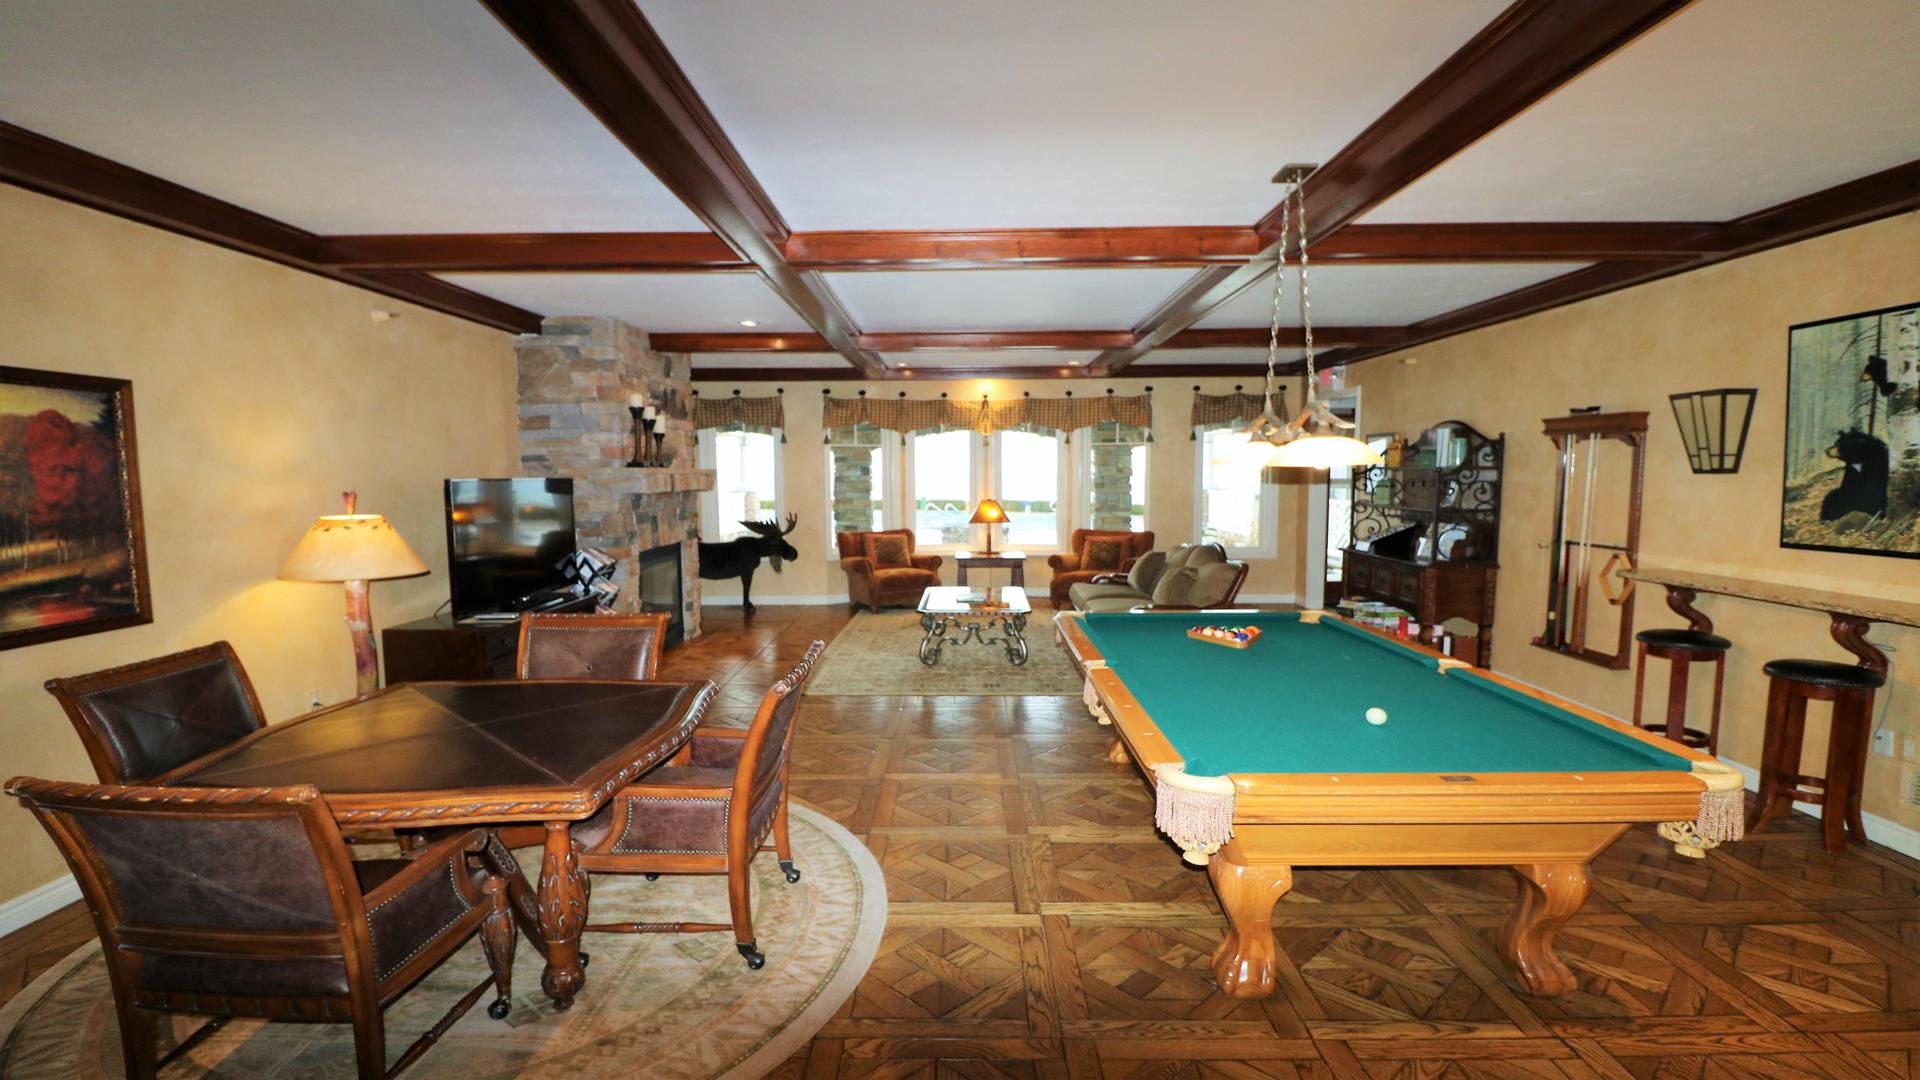 Common area with pool and game table